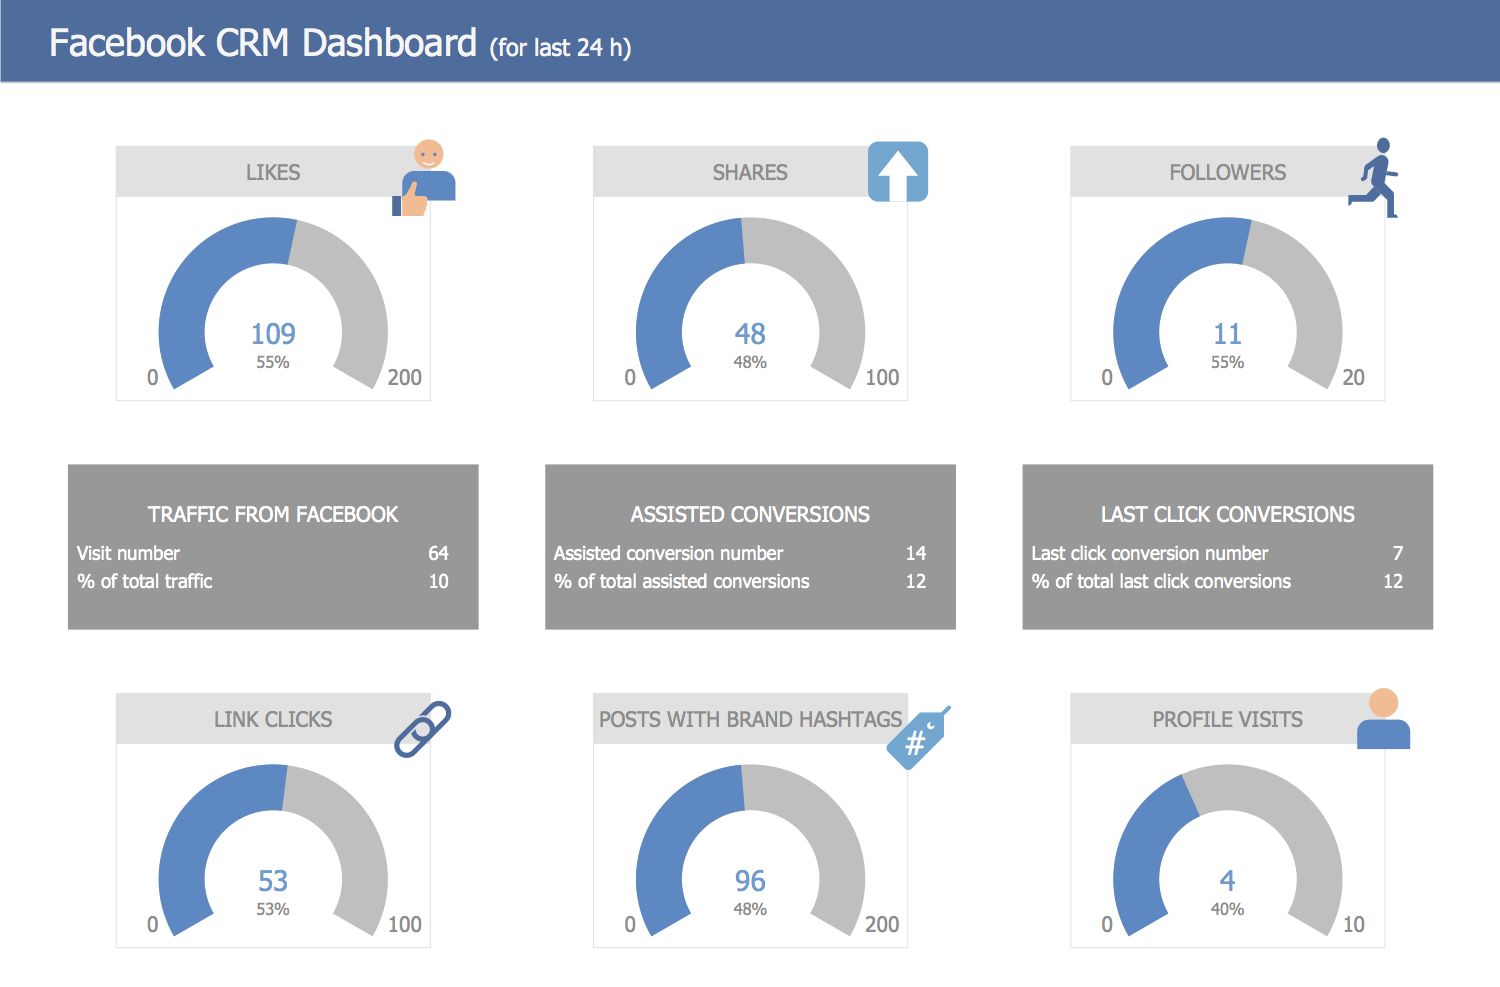 Facebook CRM Dashboard